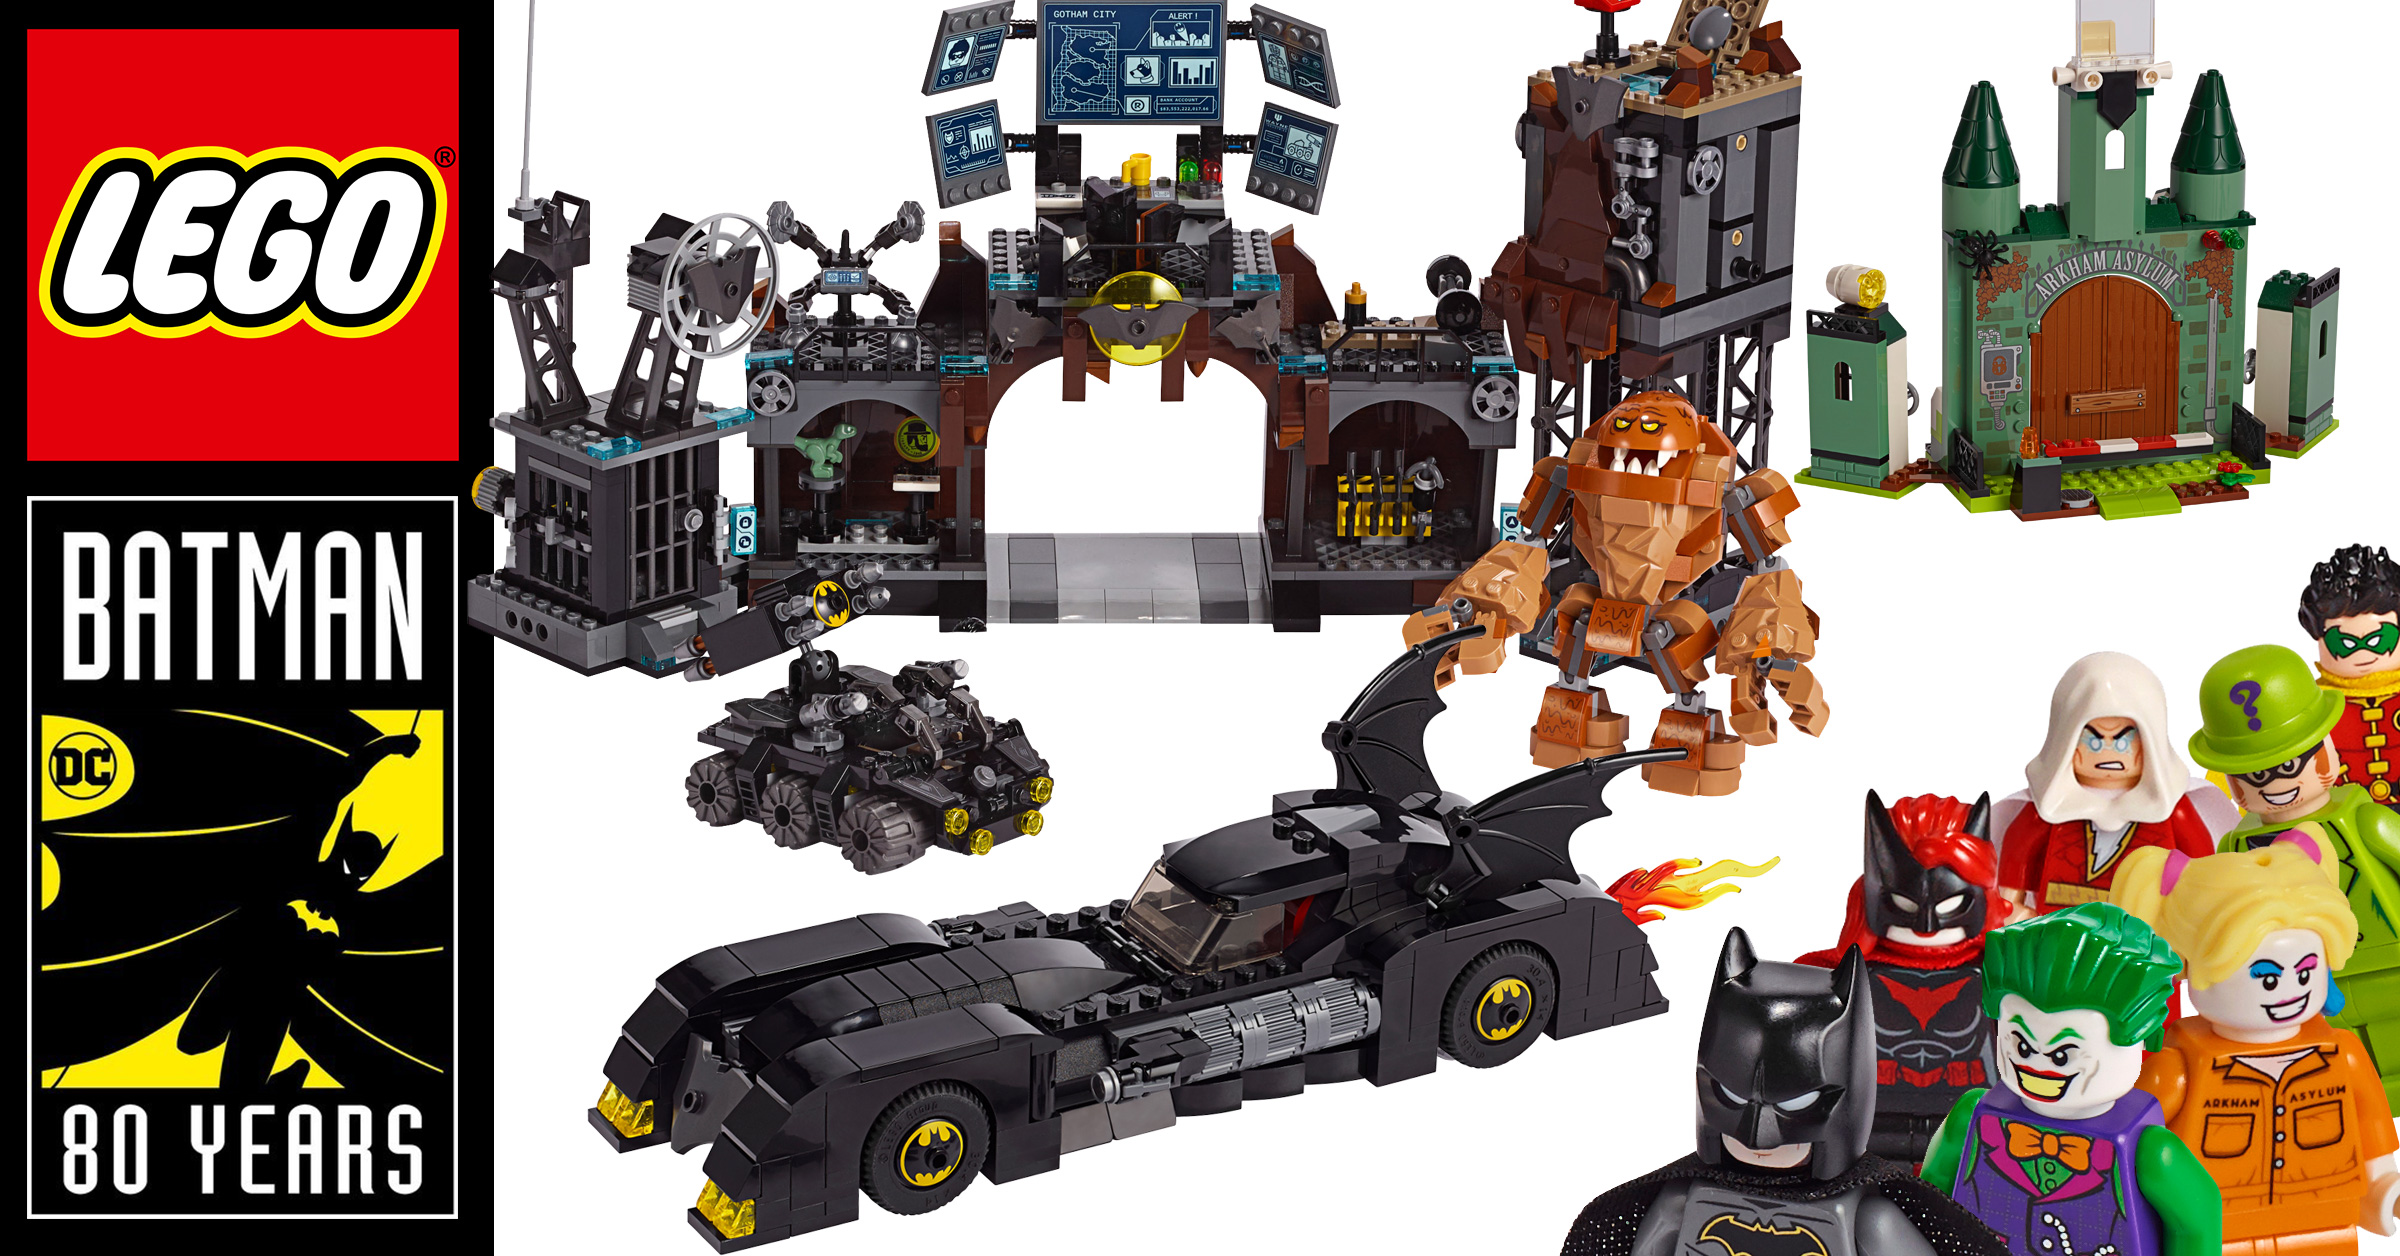 LEGO reveals six new sets to celebrate 80 years of Batman, including